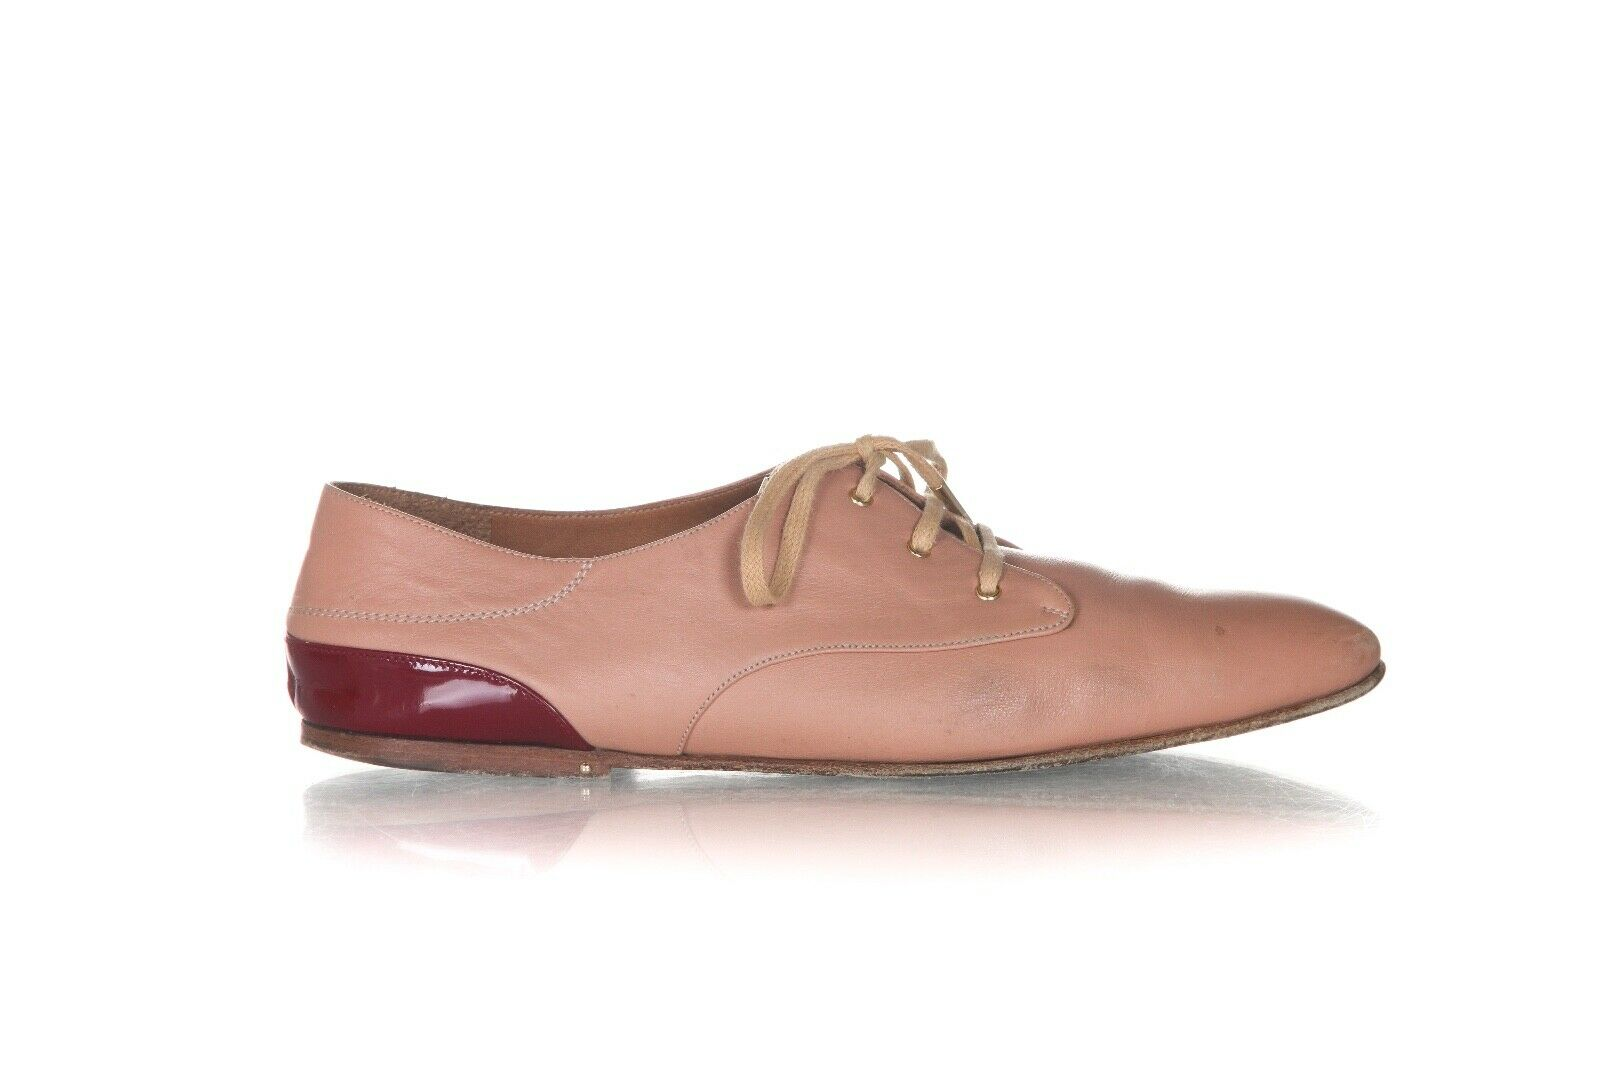 CHLOE Leather Oxford Shoes Size 37